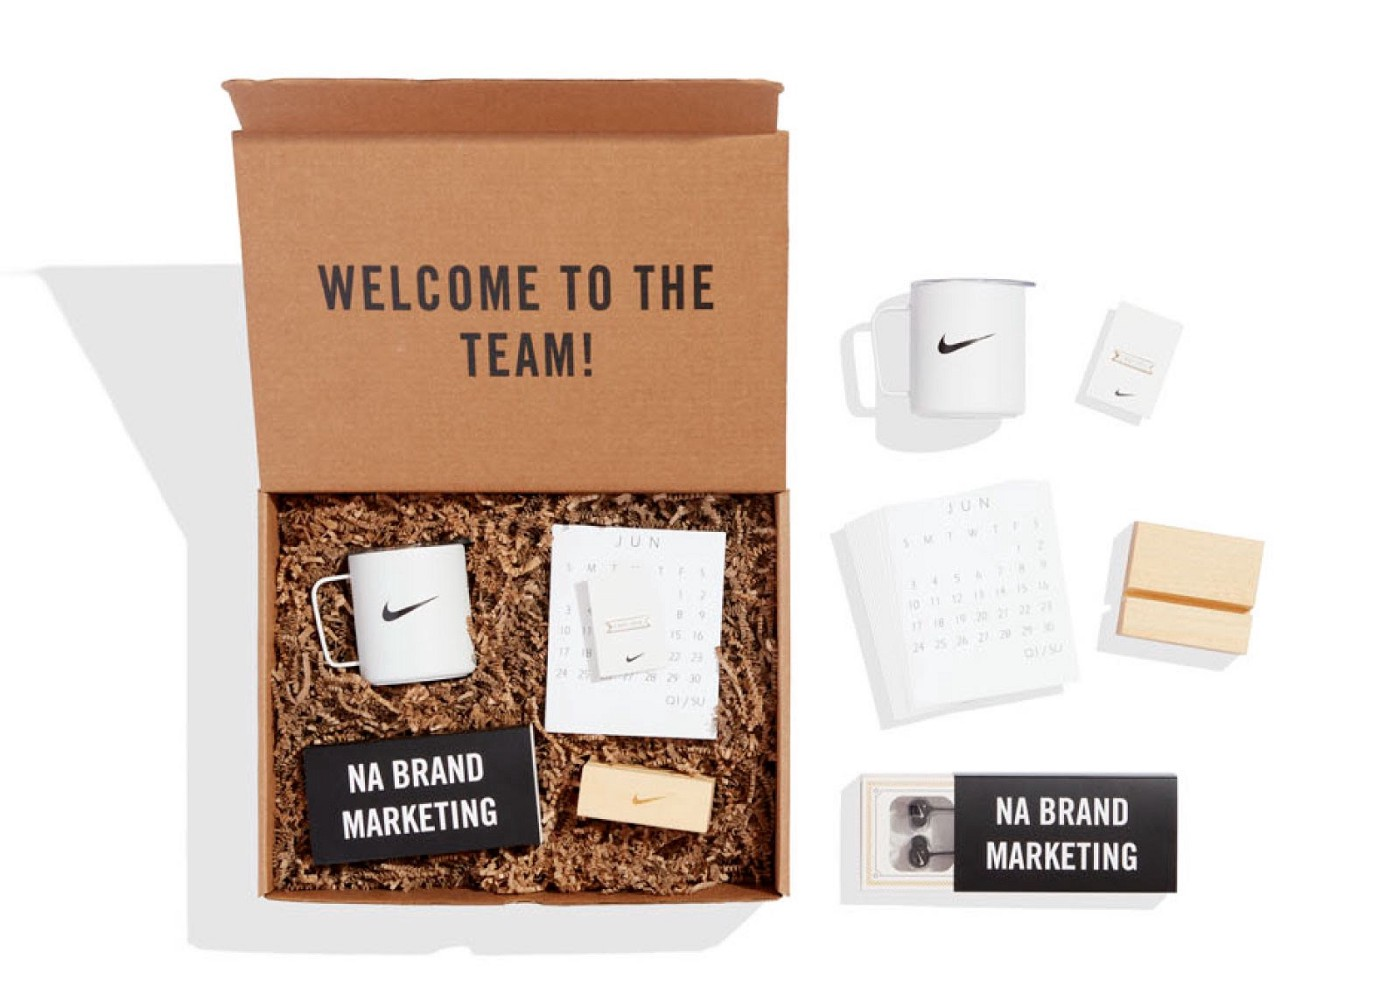 Nike's Welcome to the Team box